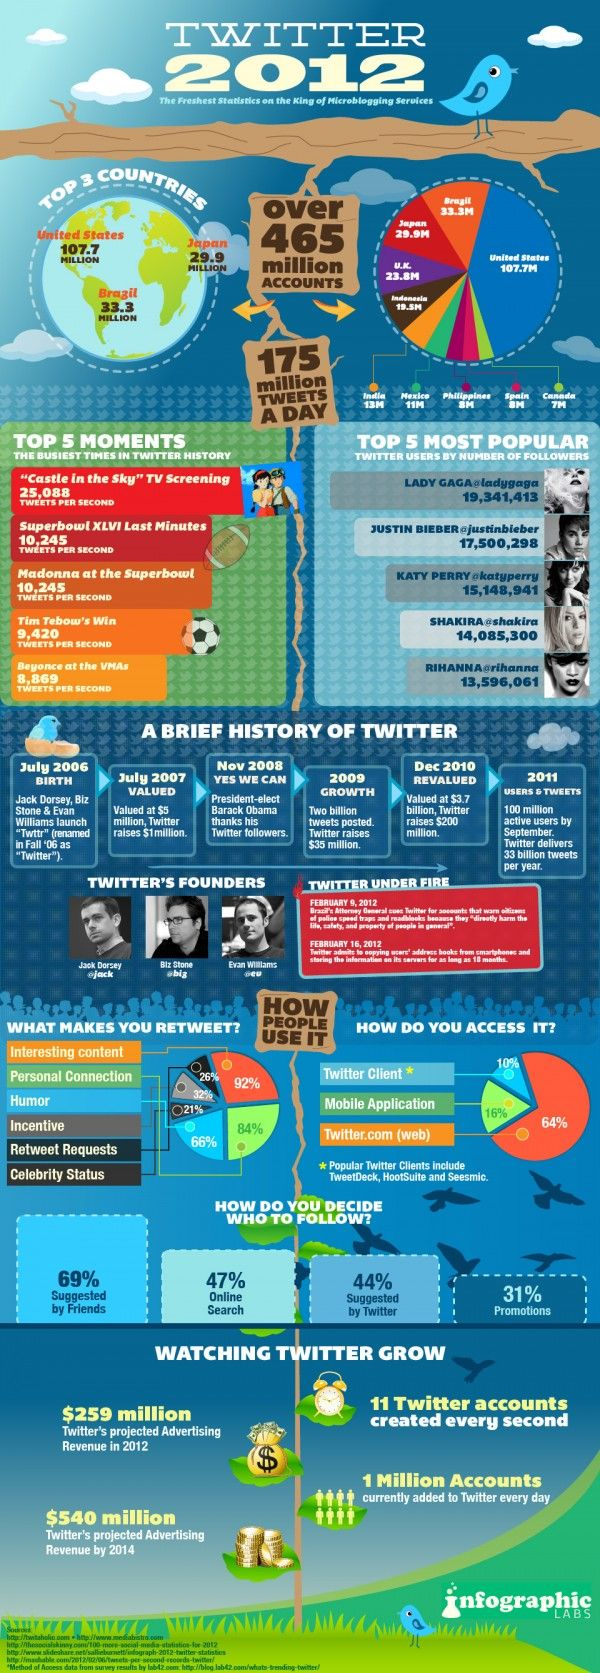 #Twitter in #2012 | infographiclabs.com